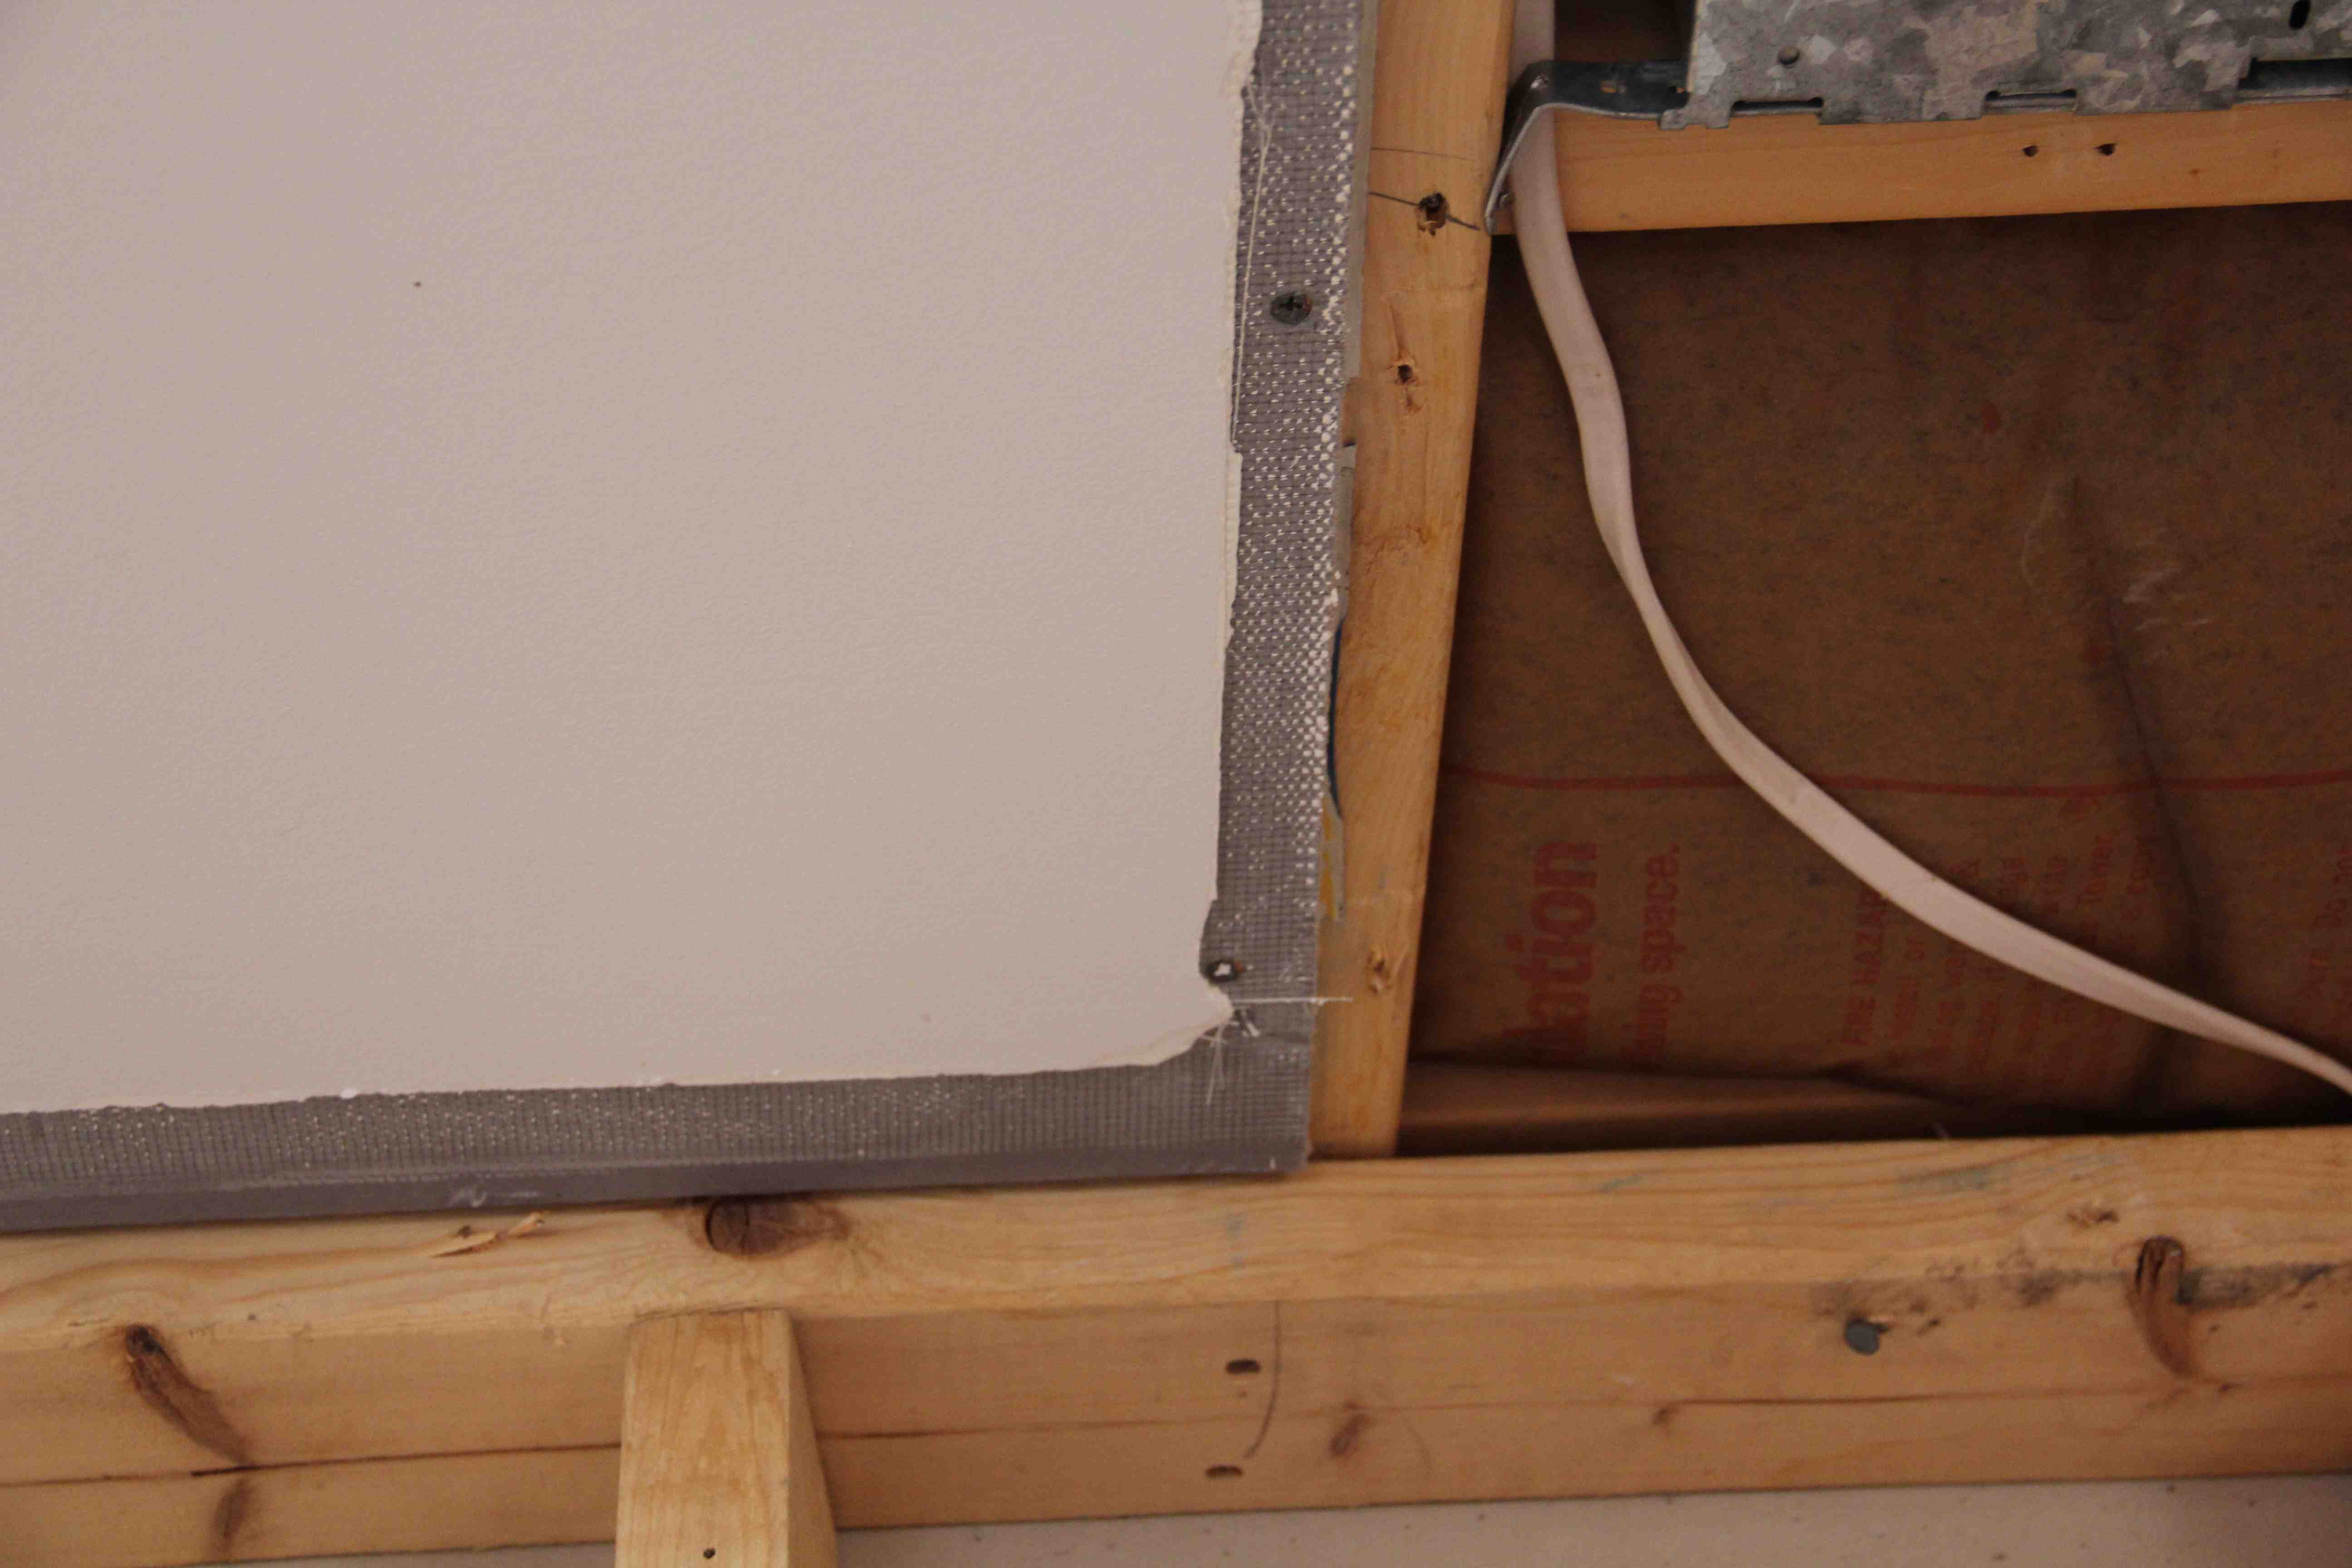 Blending New Wallboard To Old A Concord Carpenter Wiring Behind Plaster Walls Procedure